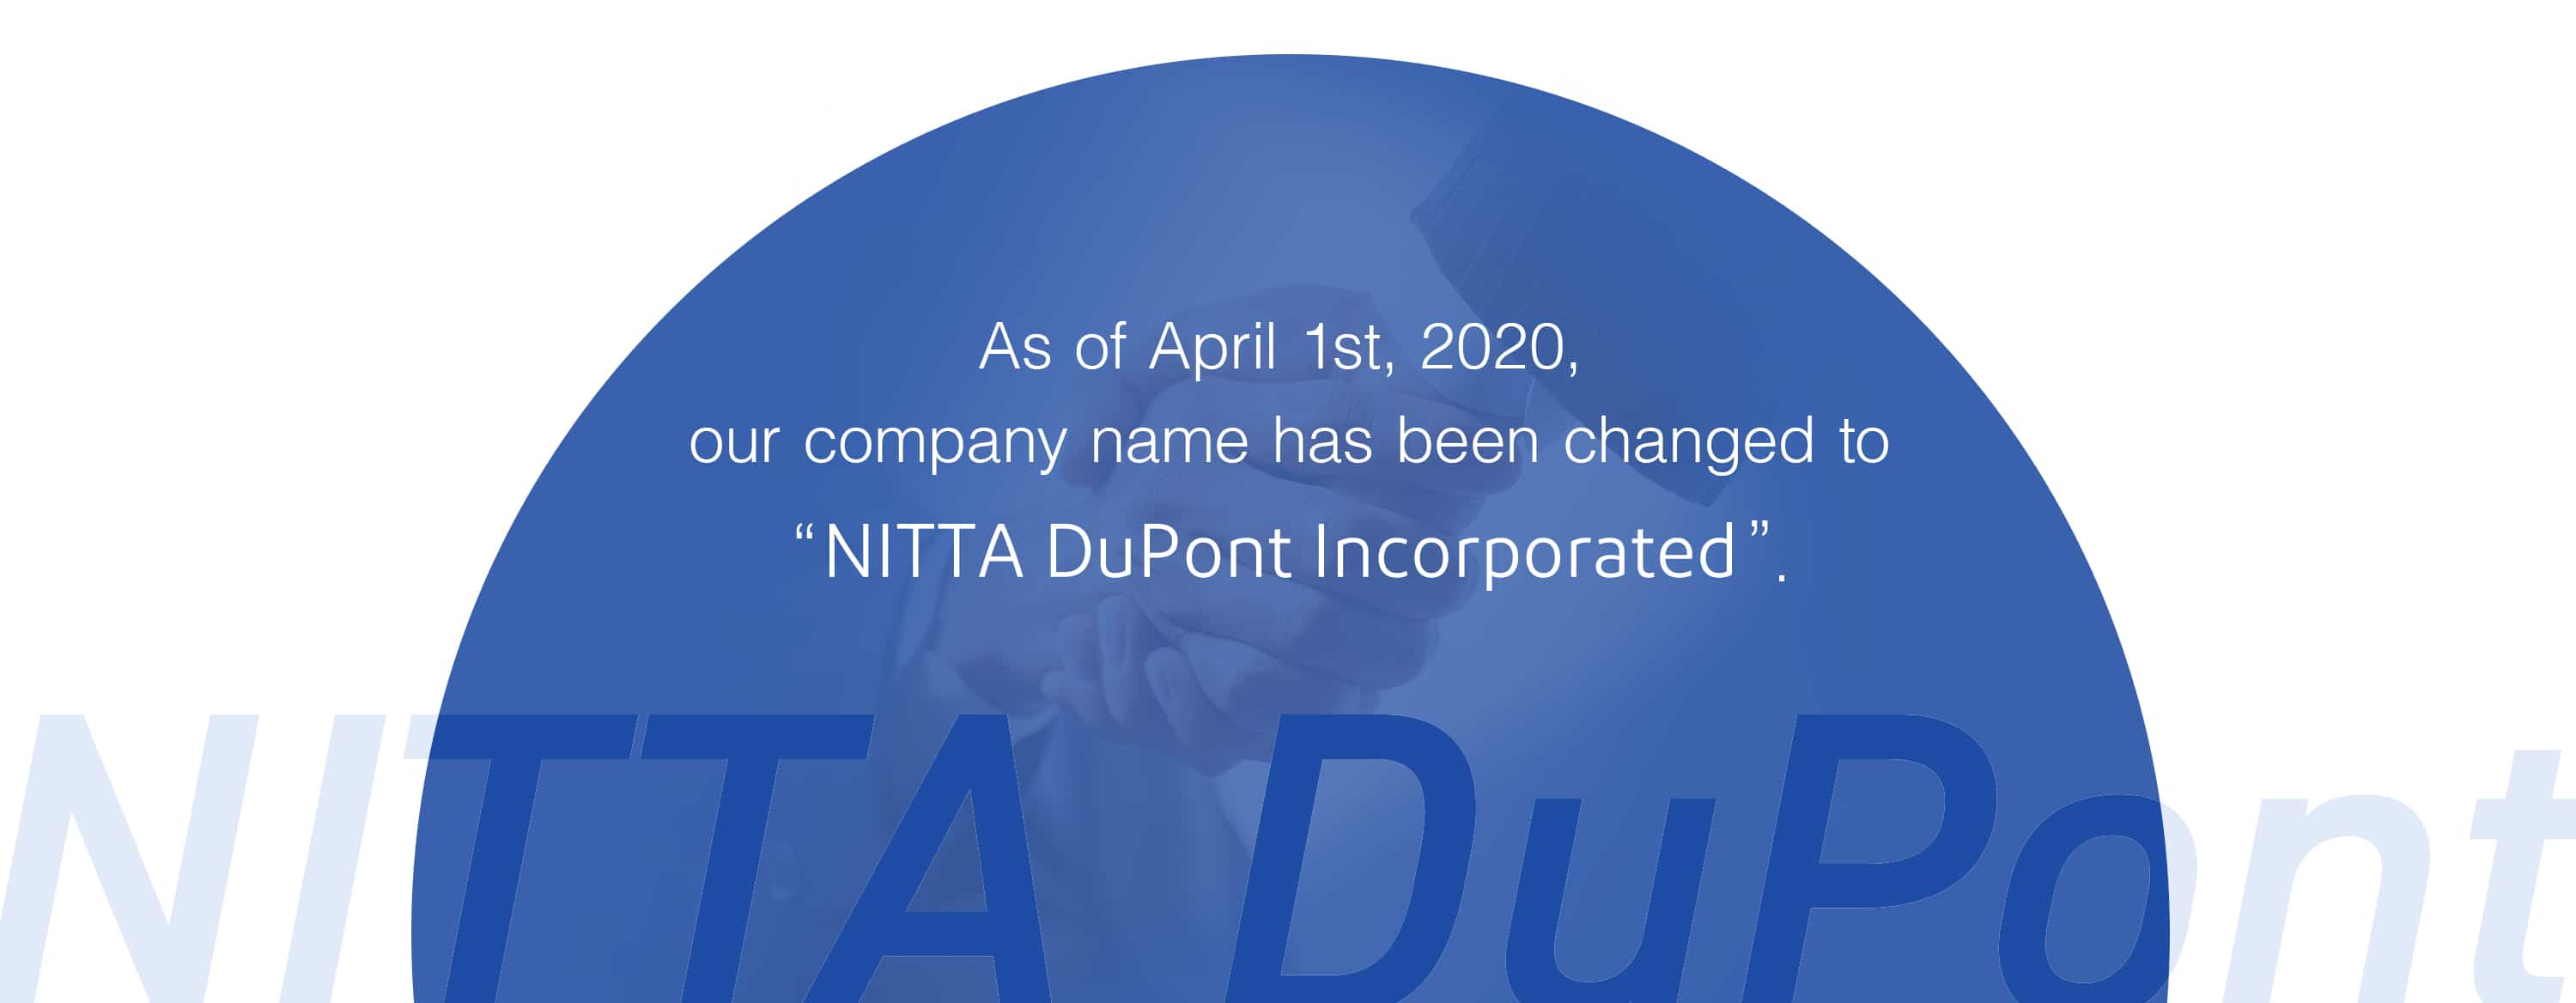 As of April 1st, 2020, our company name has been changed to 'NITTA DuPont Incorporated'.